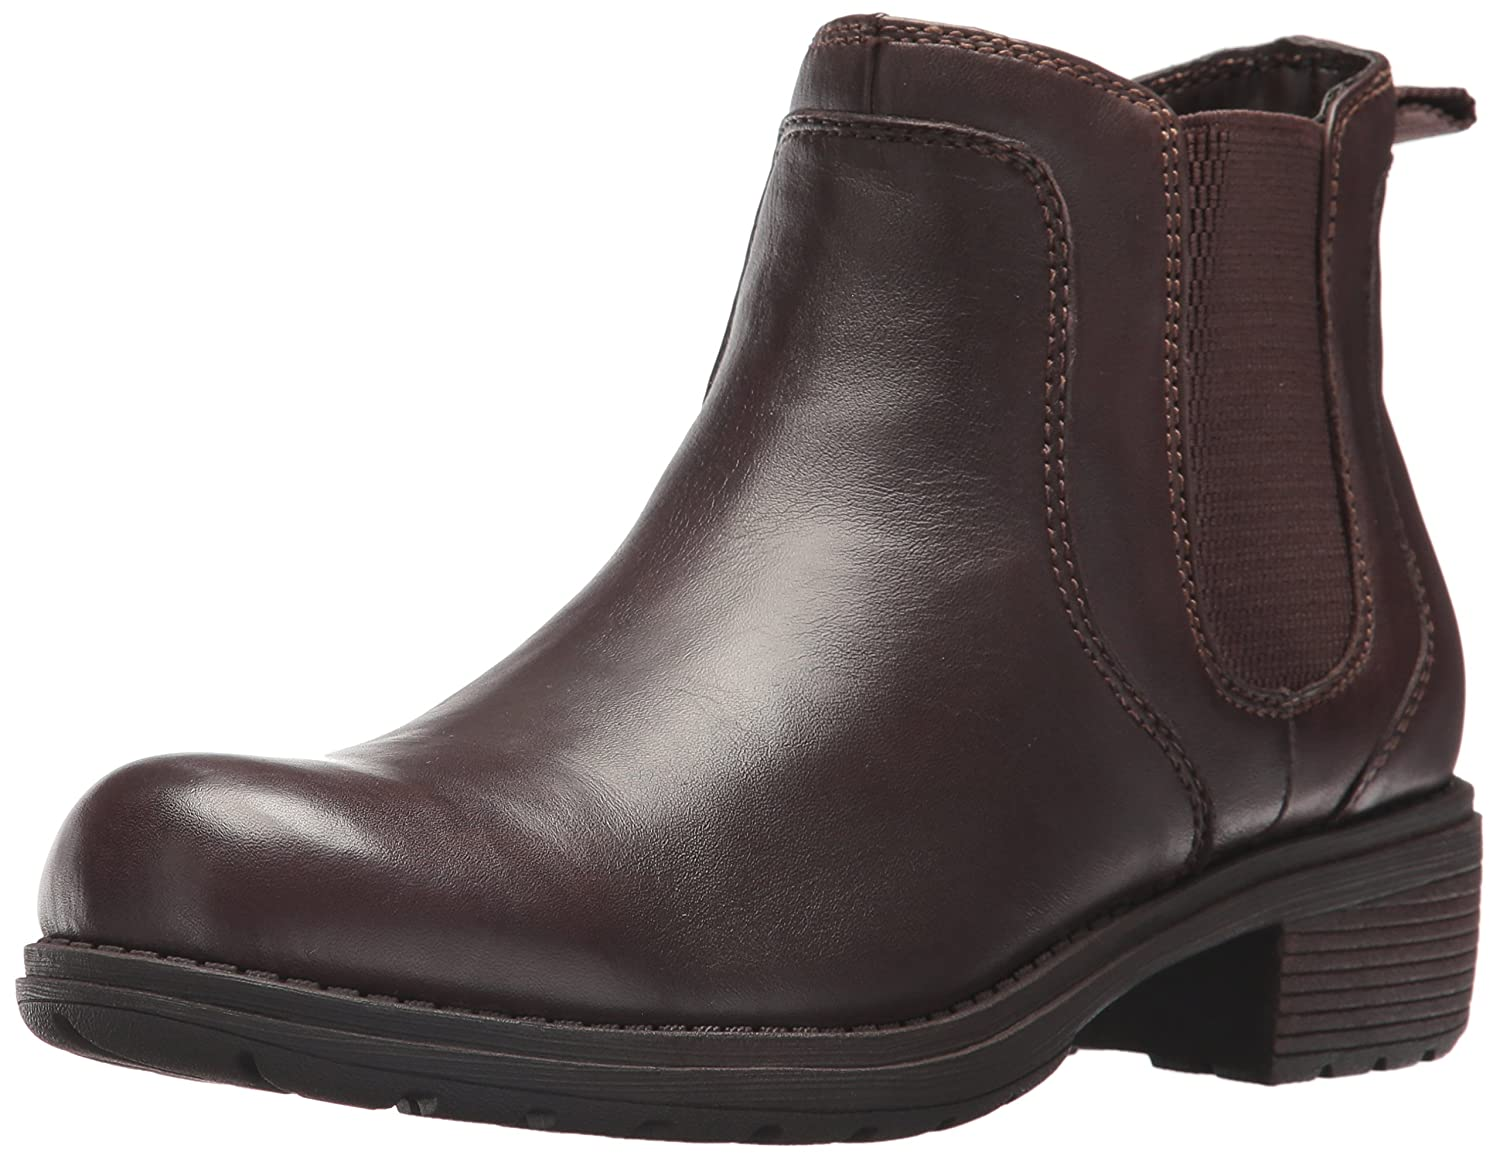 Eastland Women's Double Up Chelsea Boot B0055K8VYC 8 B(M) US|Brown